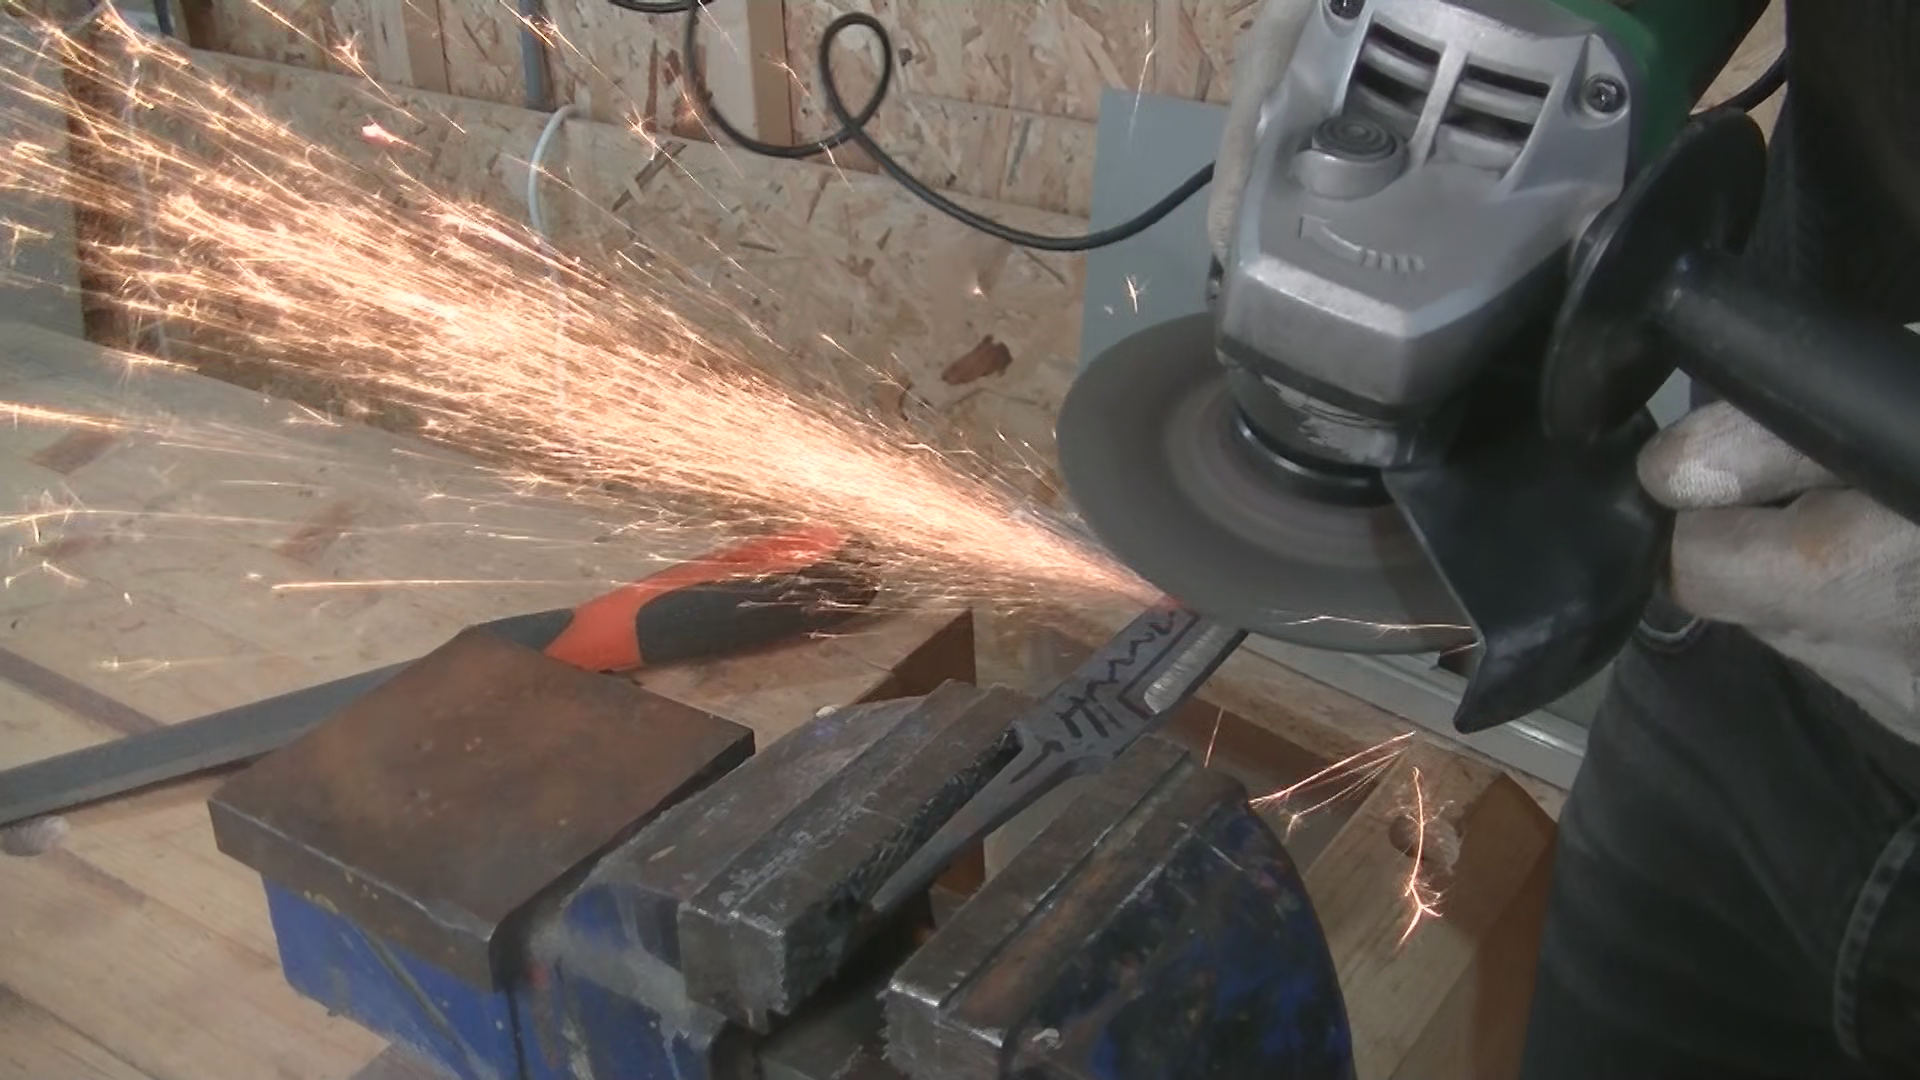 Picture of Rough Shaping With the Grinder